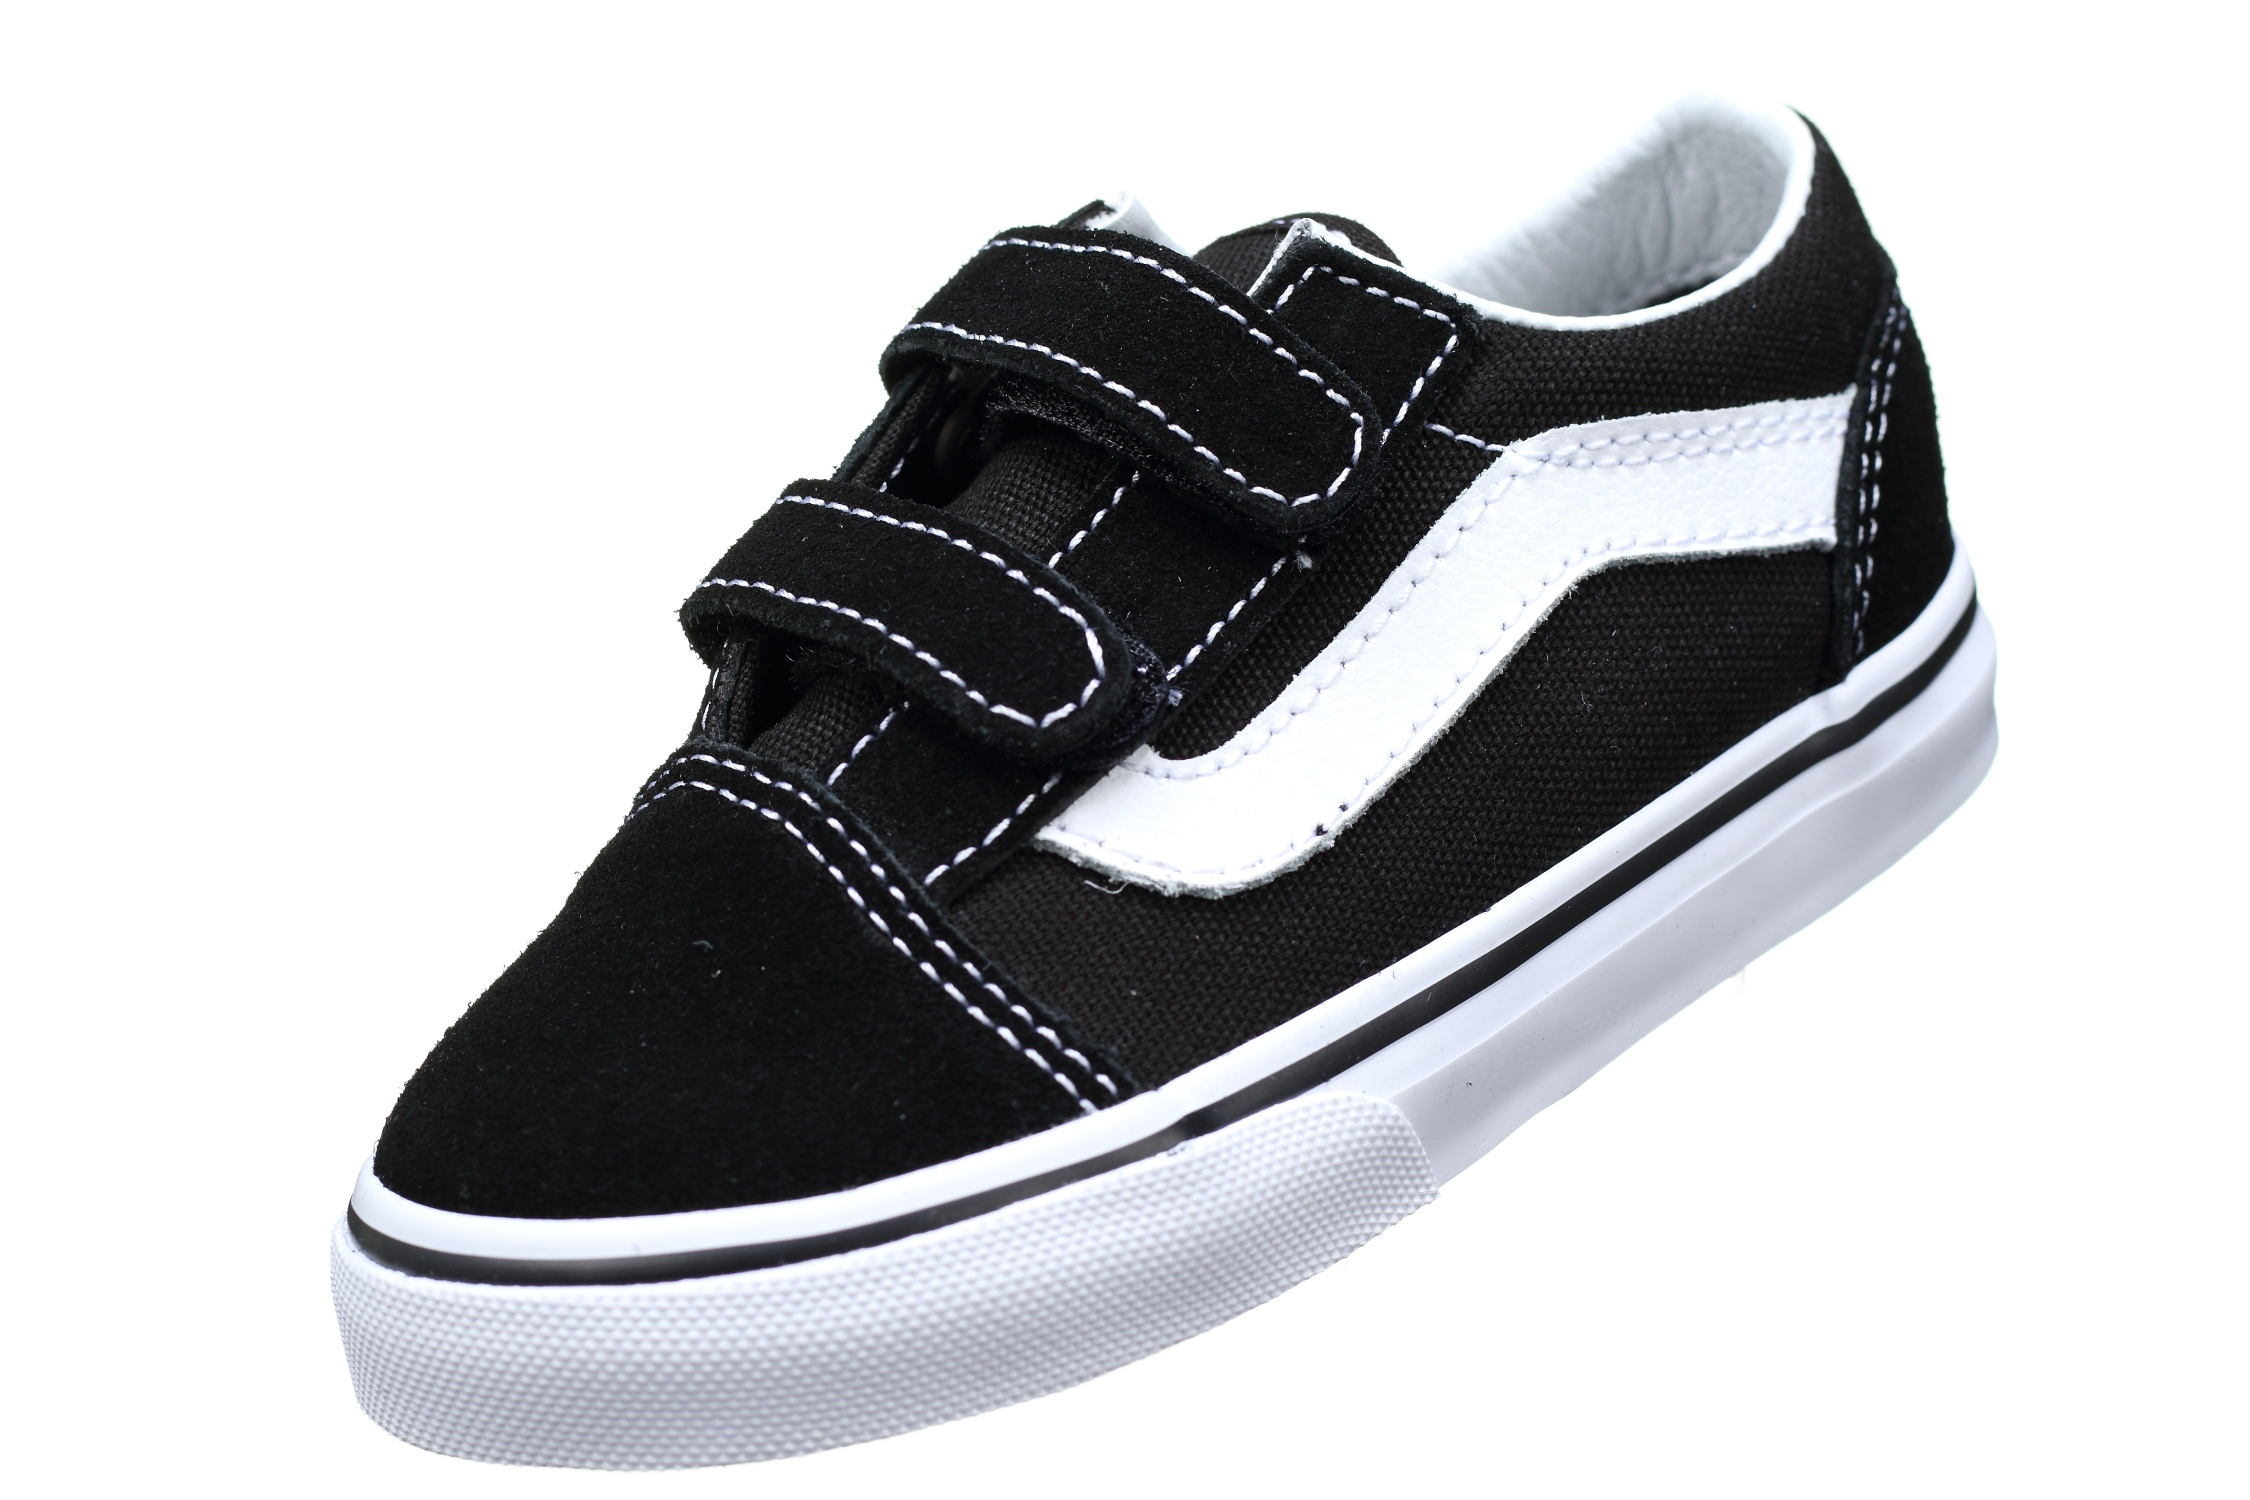 http://www.leadermode.com/153165/vans-old-skool-v-vd3yblk-black.jpg